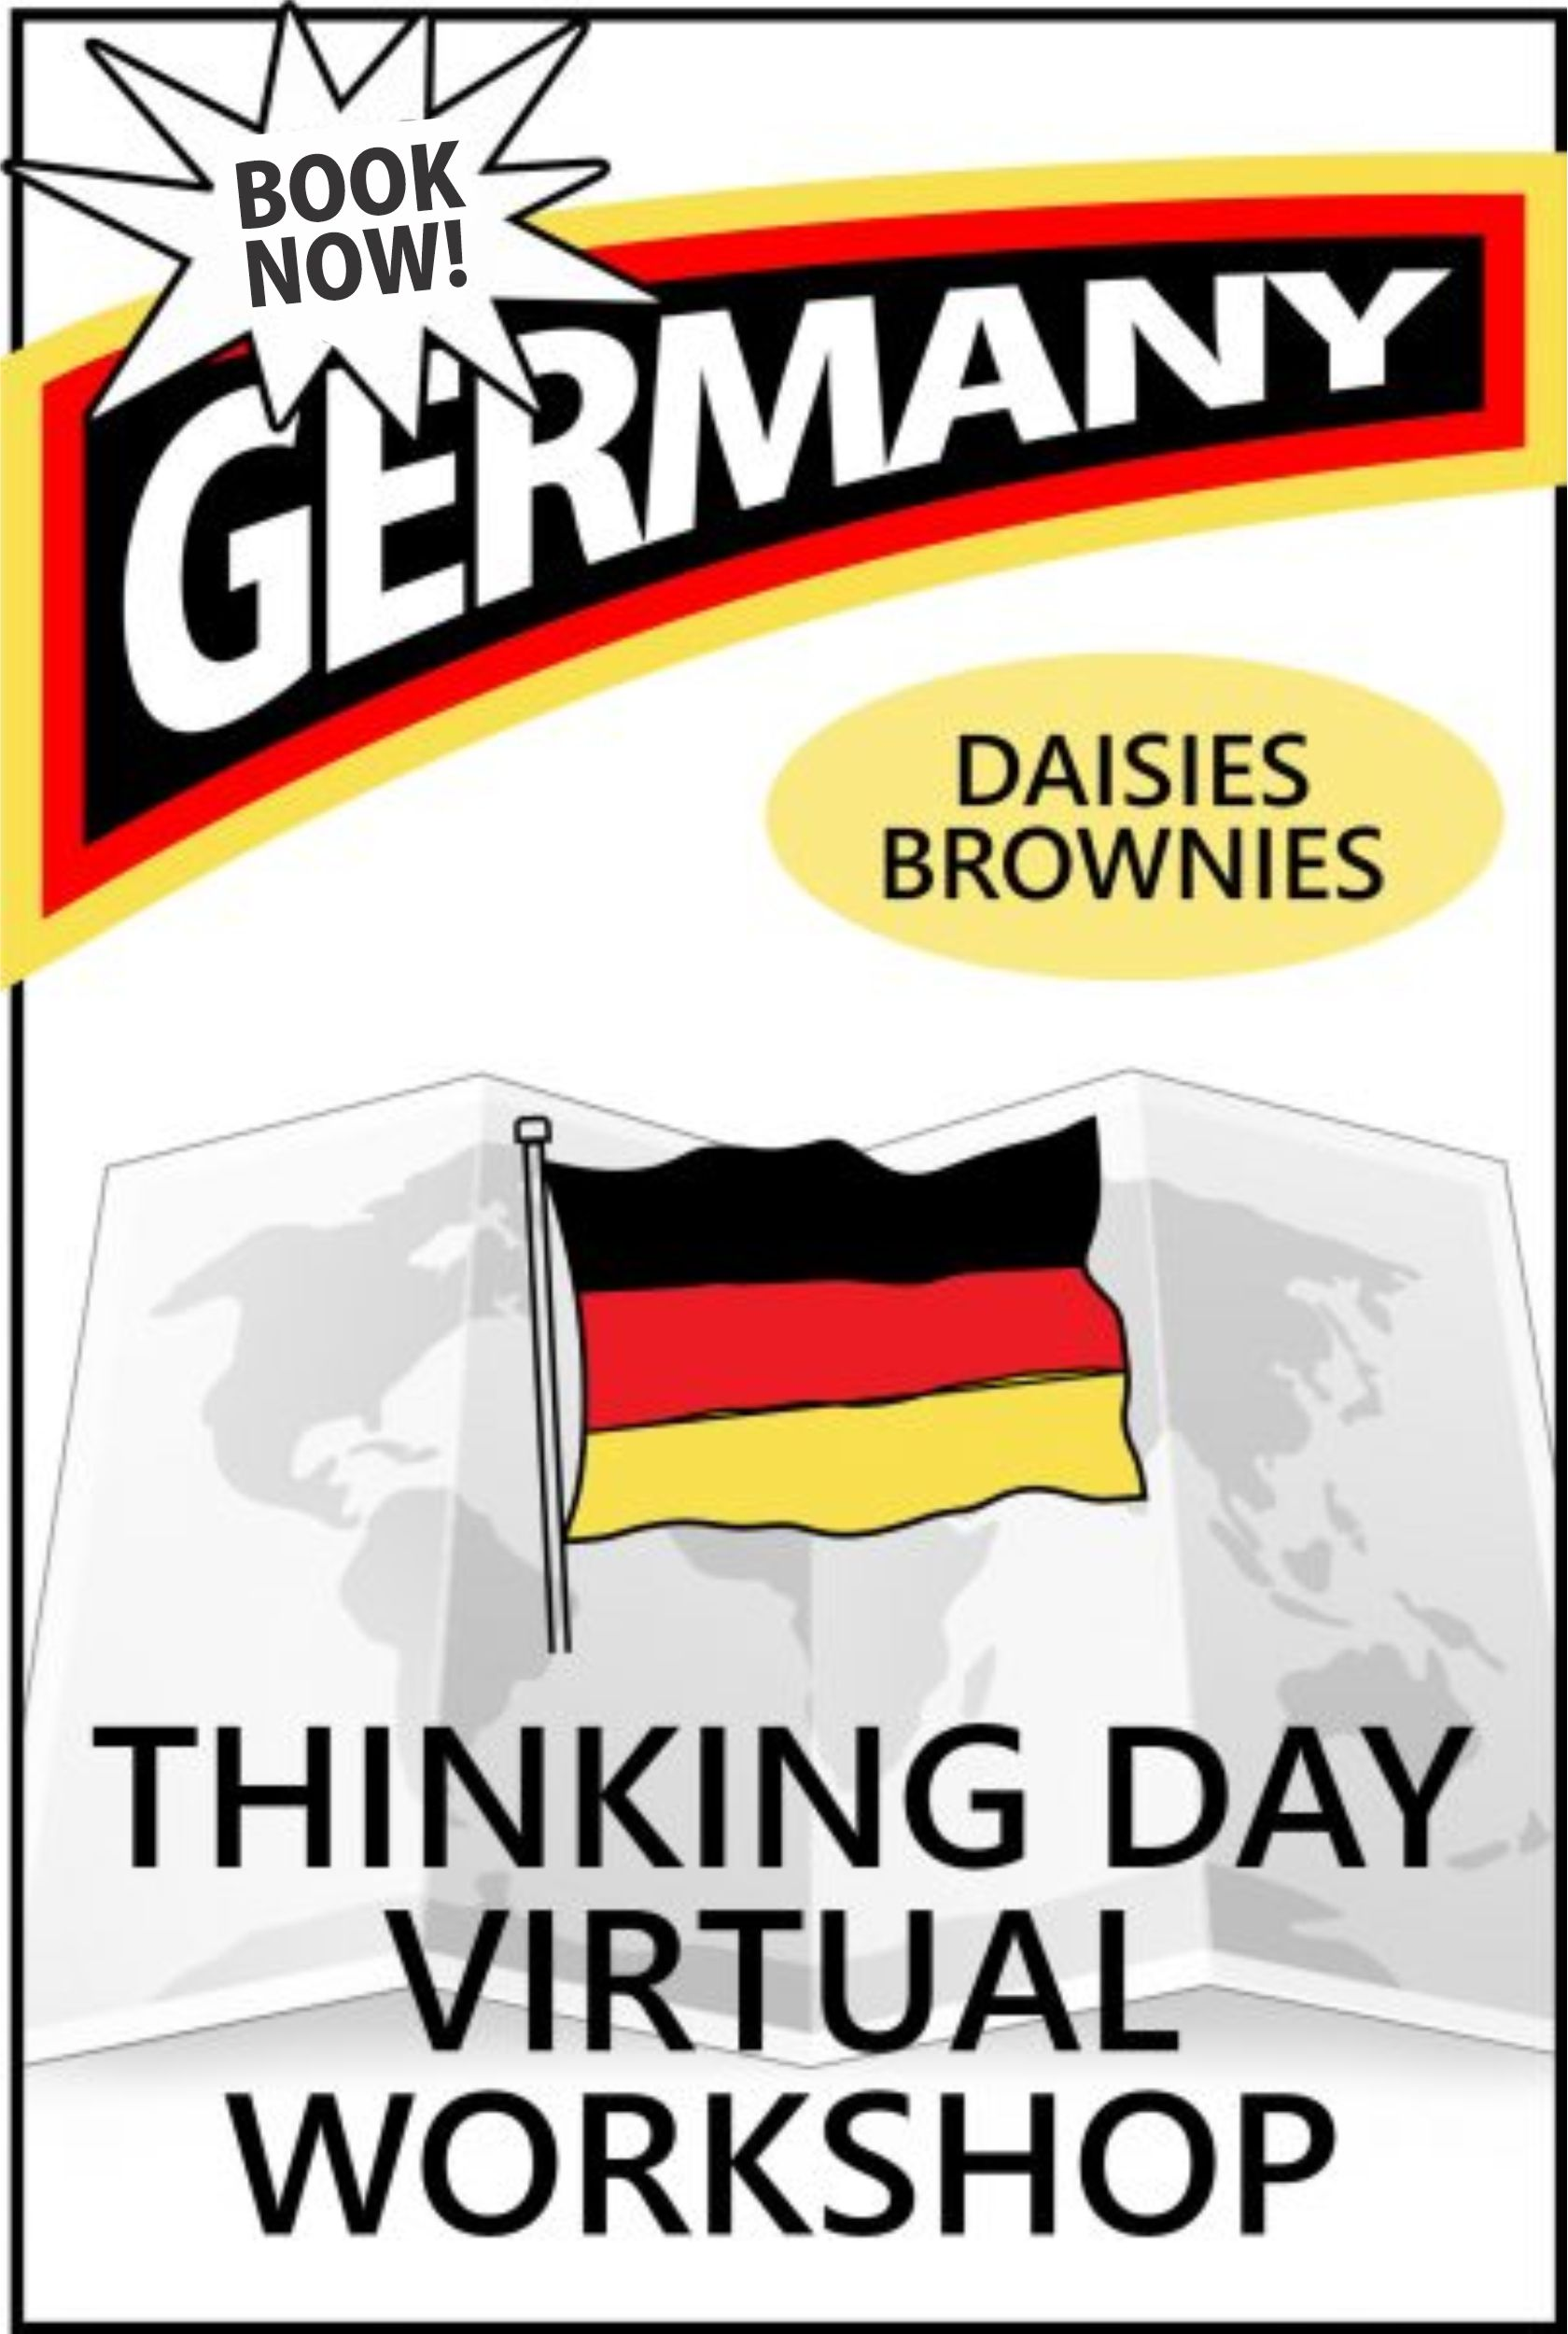 A virtual workshop, loaded with activities to keep your girls engaged and teach them about Germany for Thinking Day. #makingfriends #virtualclass #thinkingday #virtualworshop #onlineclass #germany #thinkingdayworkshop via @gsleader411